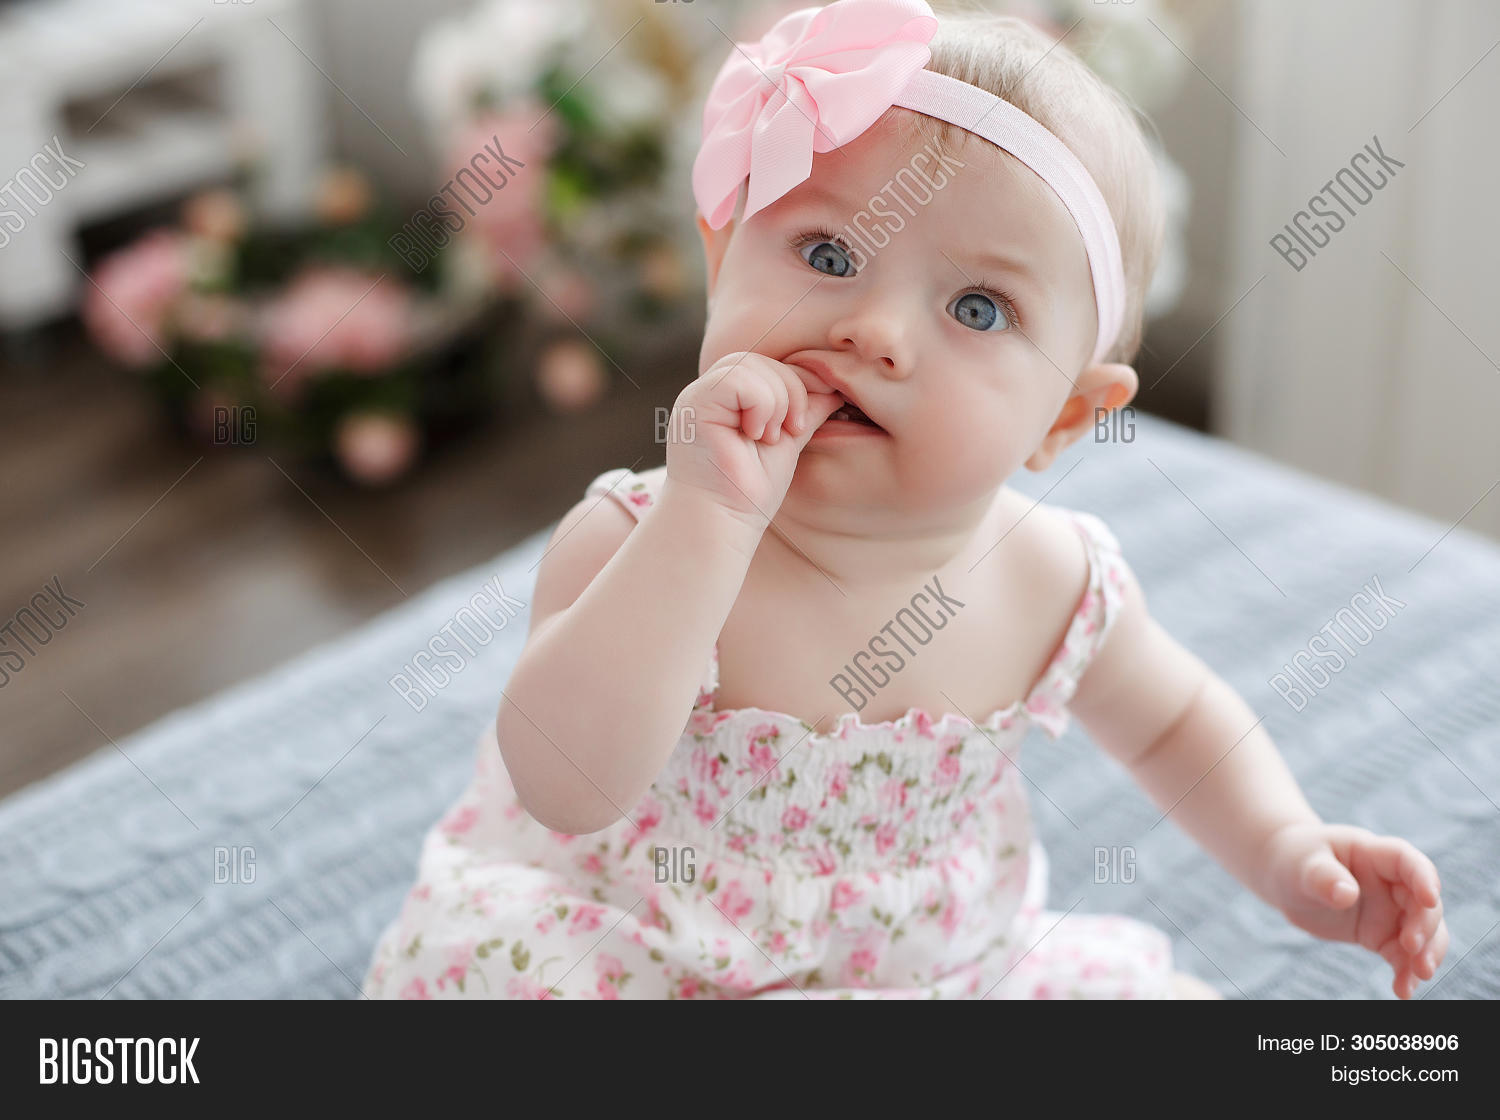 adorable,arms,attractive,baby,background,beautiful,beauty,bed,cheeks,child,childhood,cute,daughter,eyes,face,female,girl,hat,health,healthy,horizontal,human,indoor,innocence,innocent,kid,legs,life,little,looking,lovely,lying,newborn,one,peaceful,person,pink,portrait,posing,pretty,pure,relax,skin,small,soft,sweet,tiny,toddler,white,young